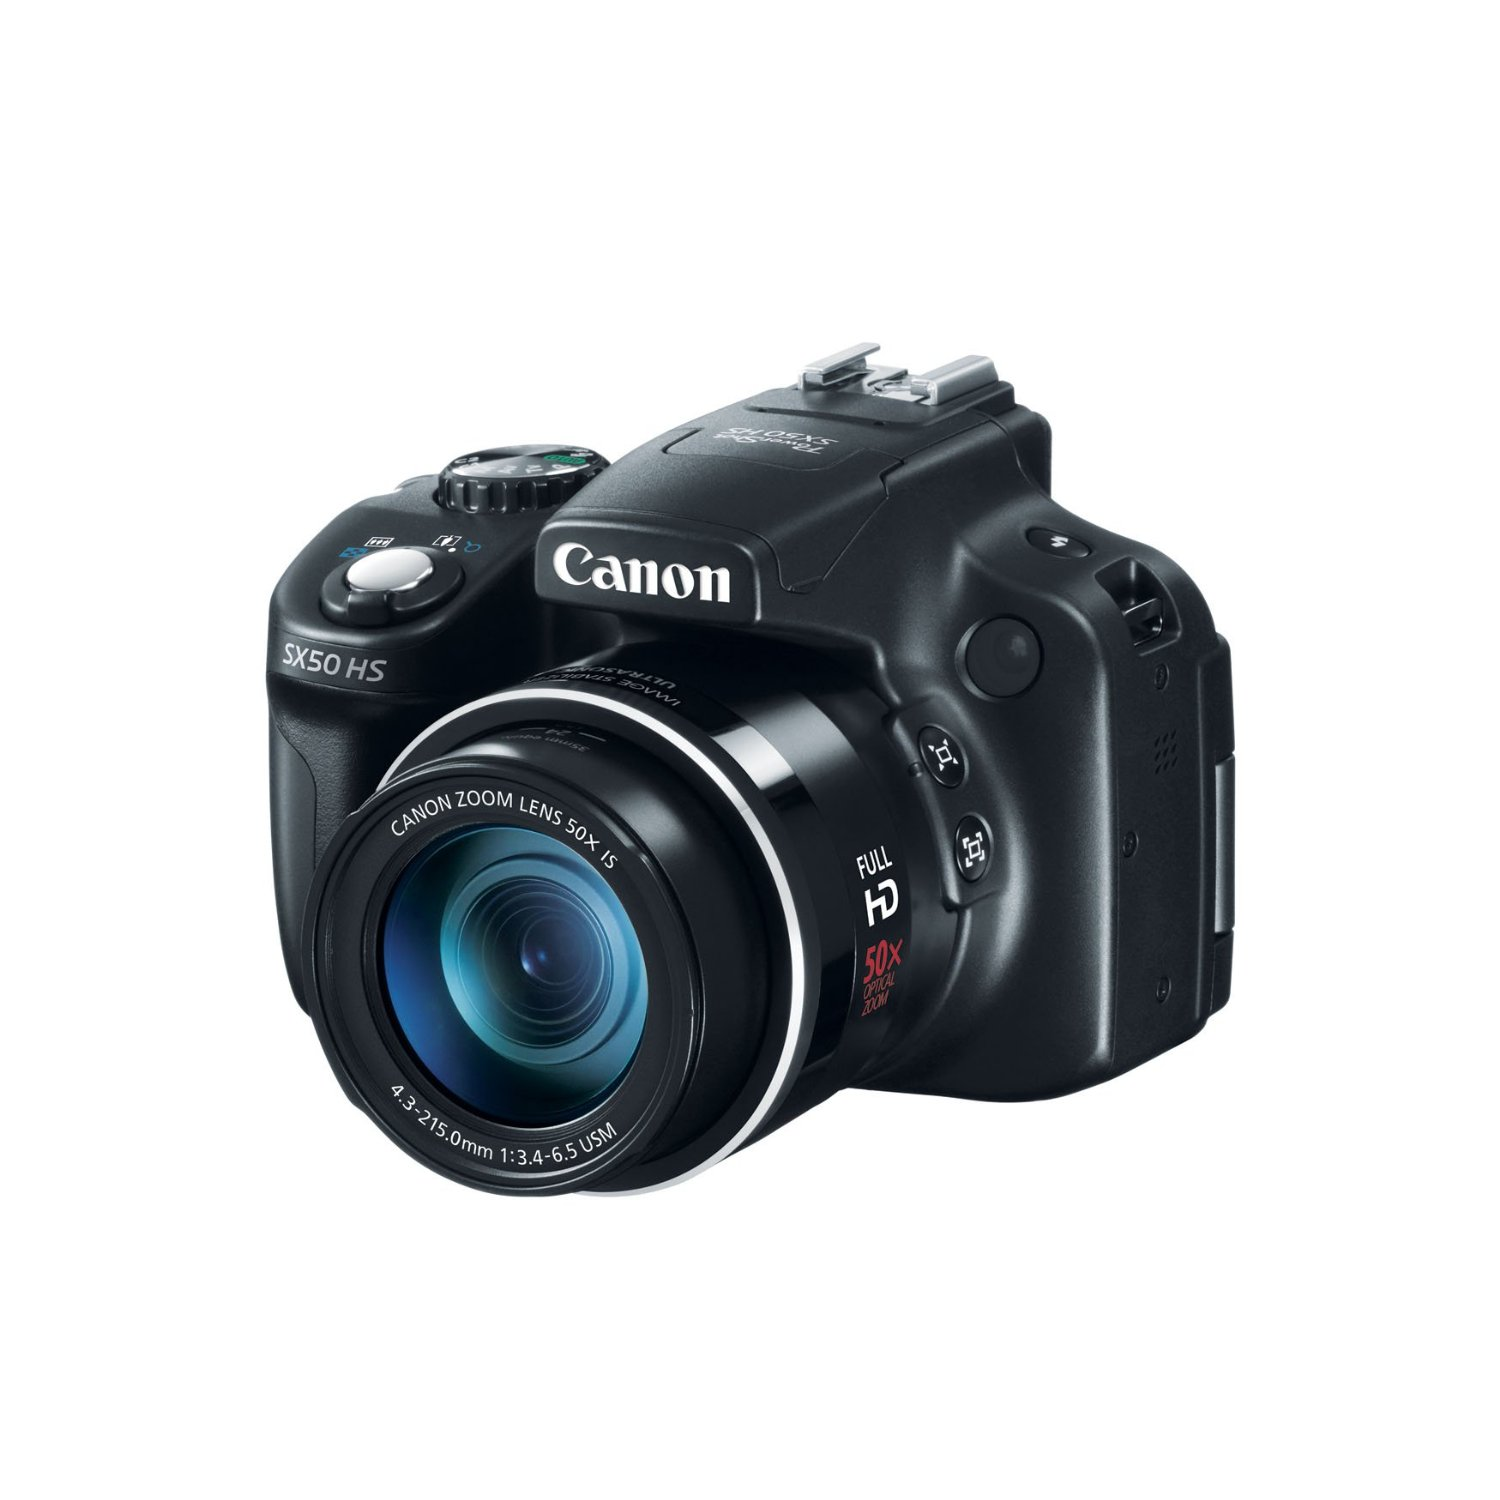 Canon PowerShot SX50 HS ~ 12.1MP Digital Camera at Sears.com